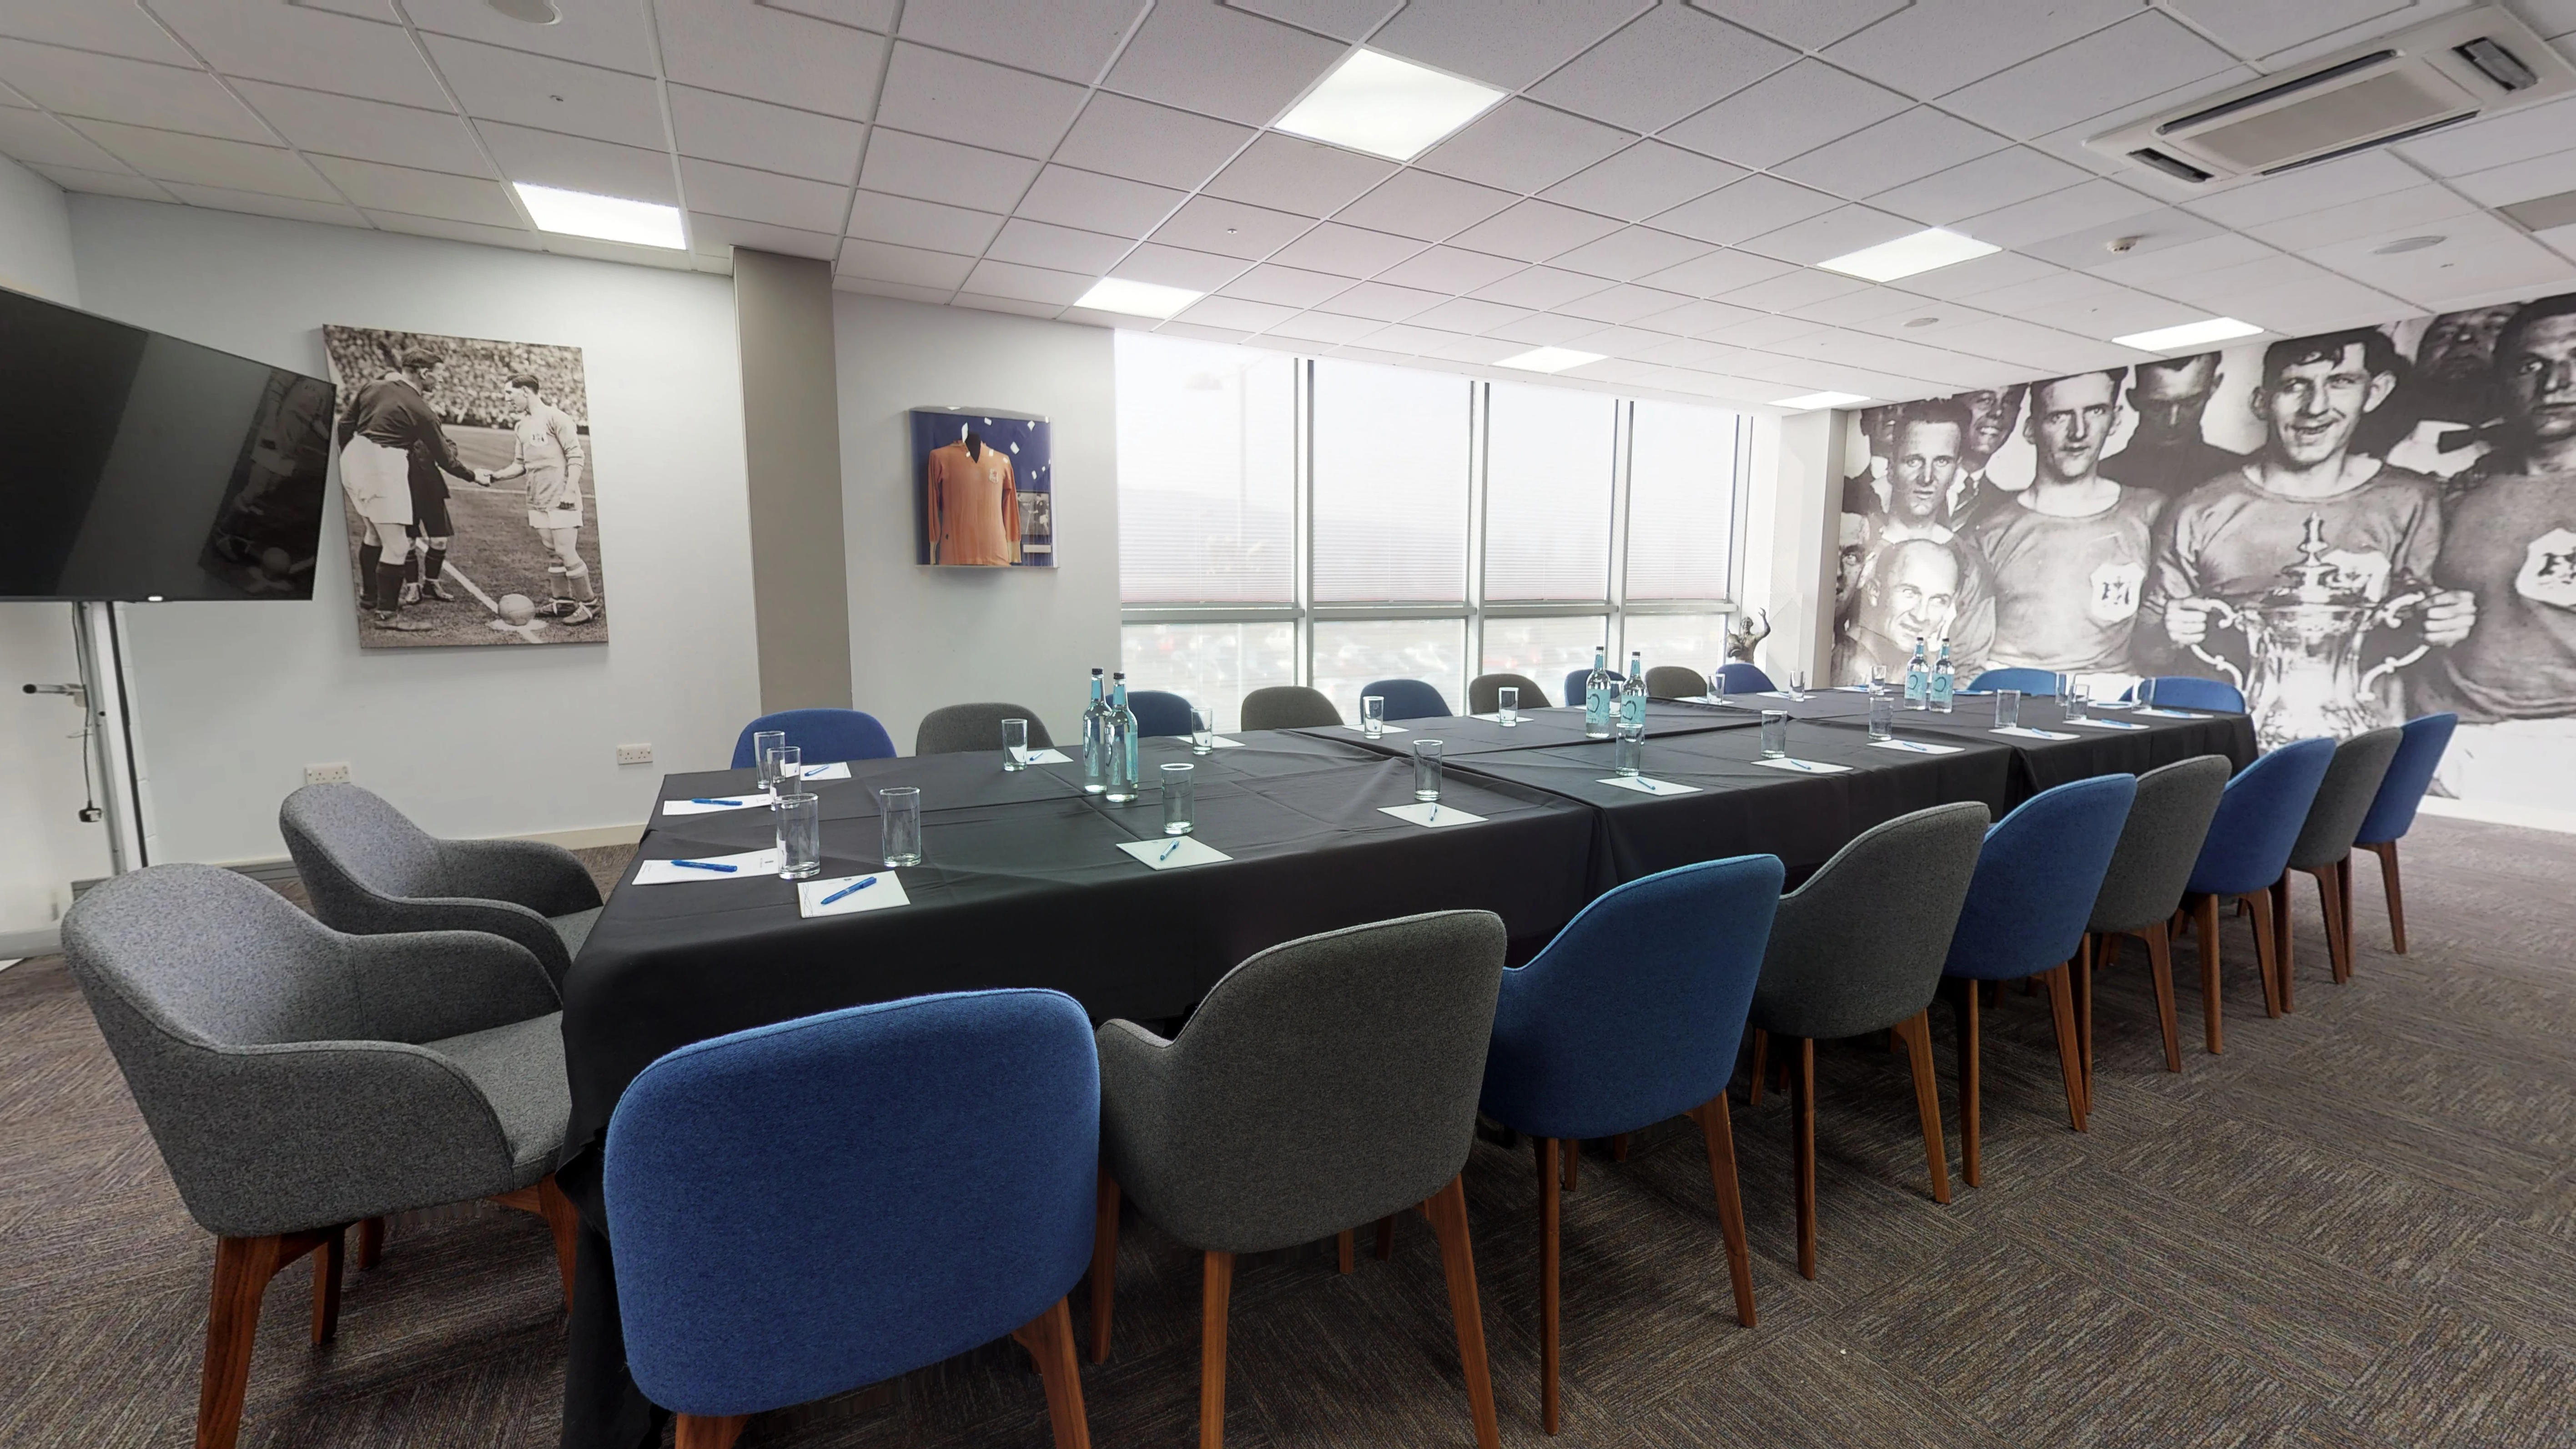 Cardiff City Meetings Events Fred Keenor Suite Boardroom(1)